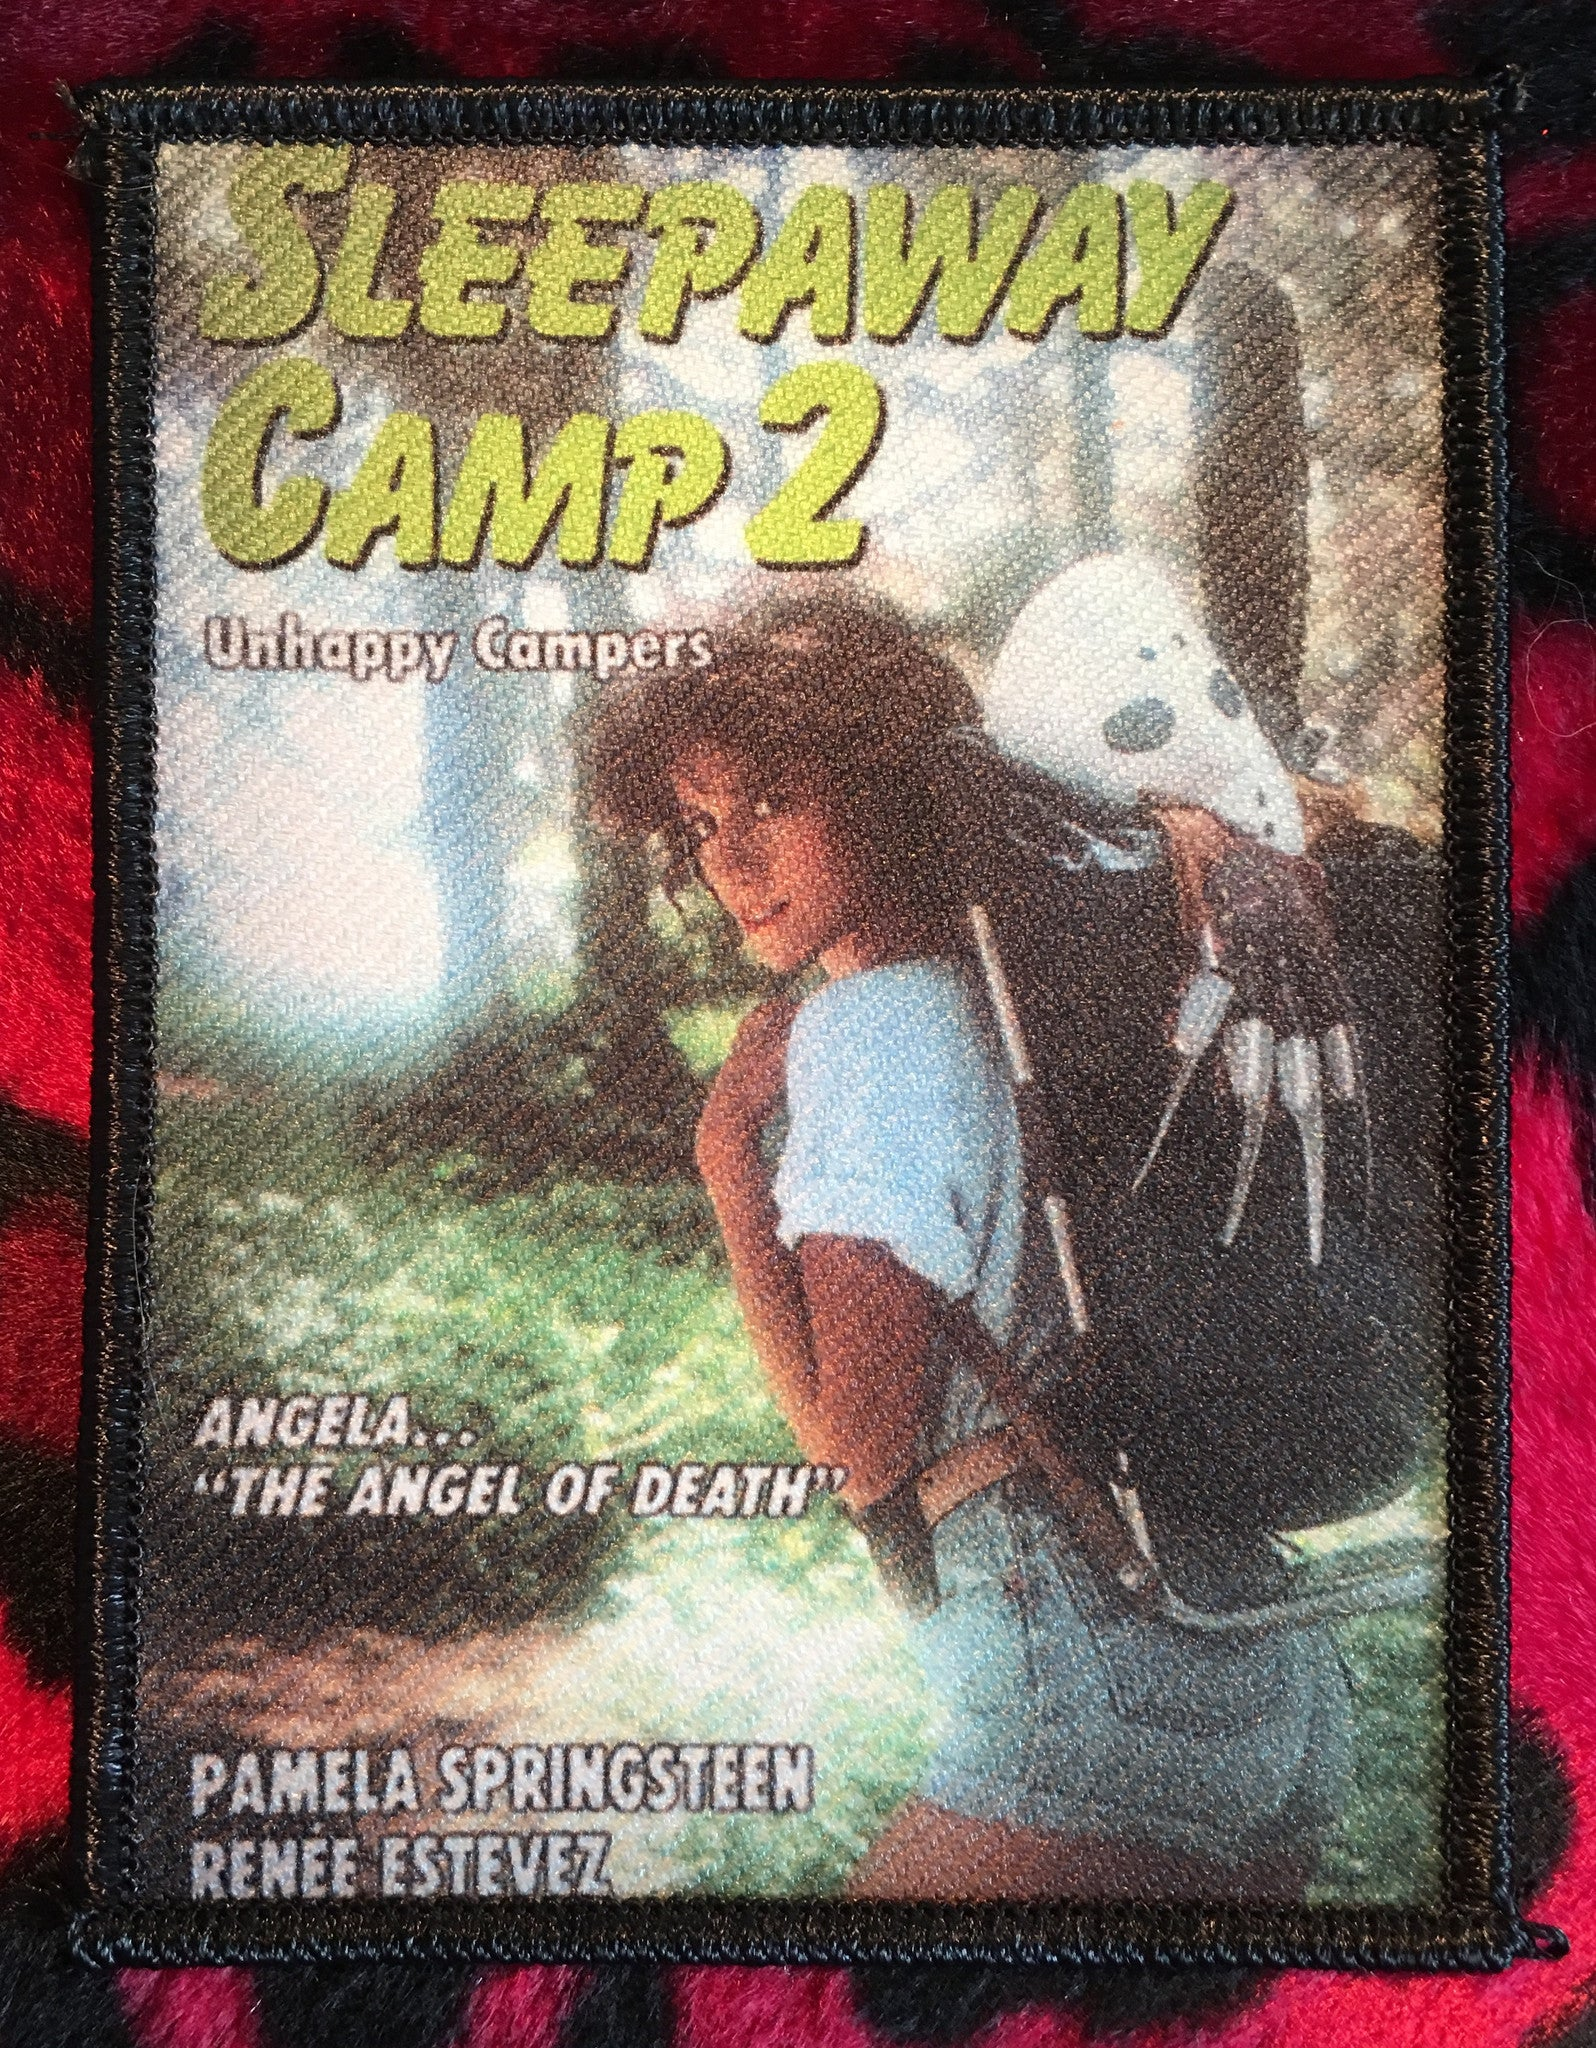 Sleepaway Camp 2 Unhappy Campers Patch